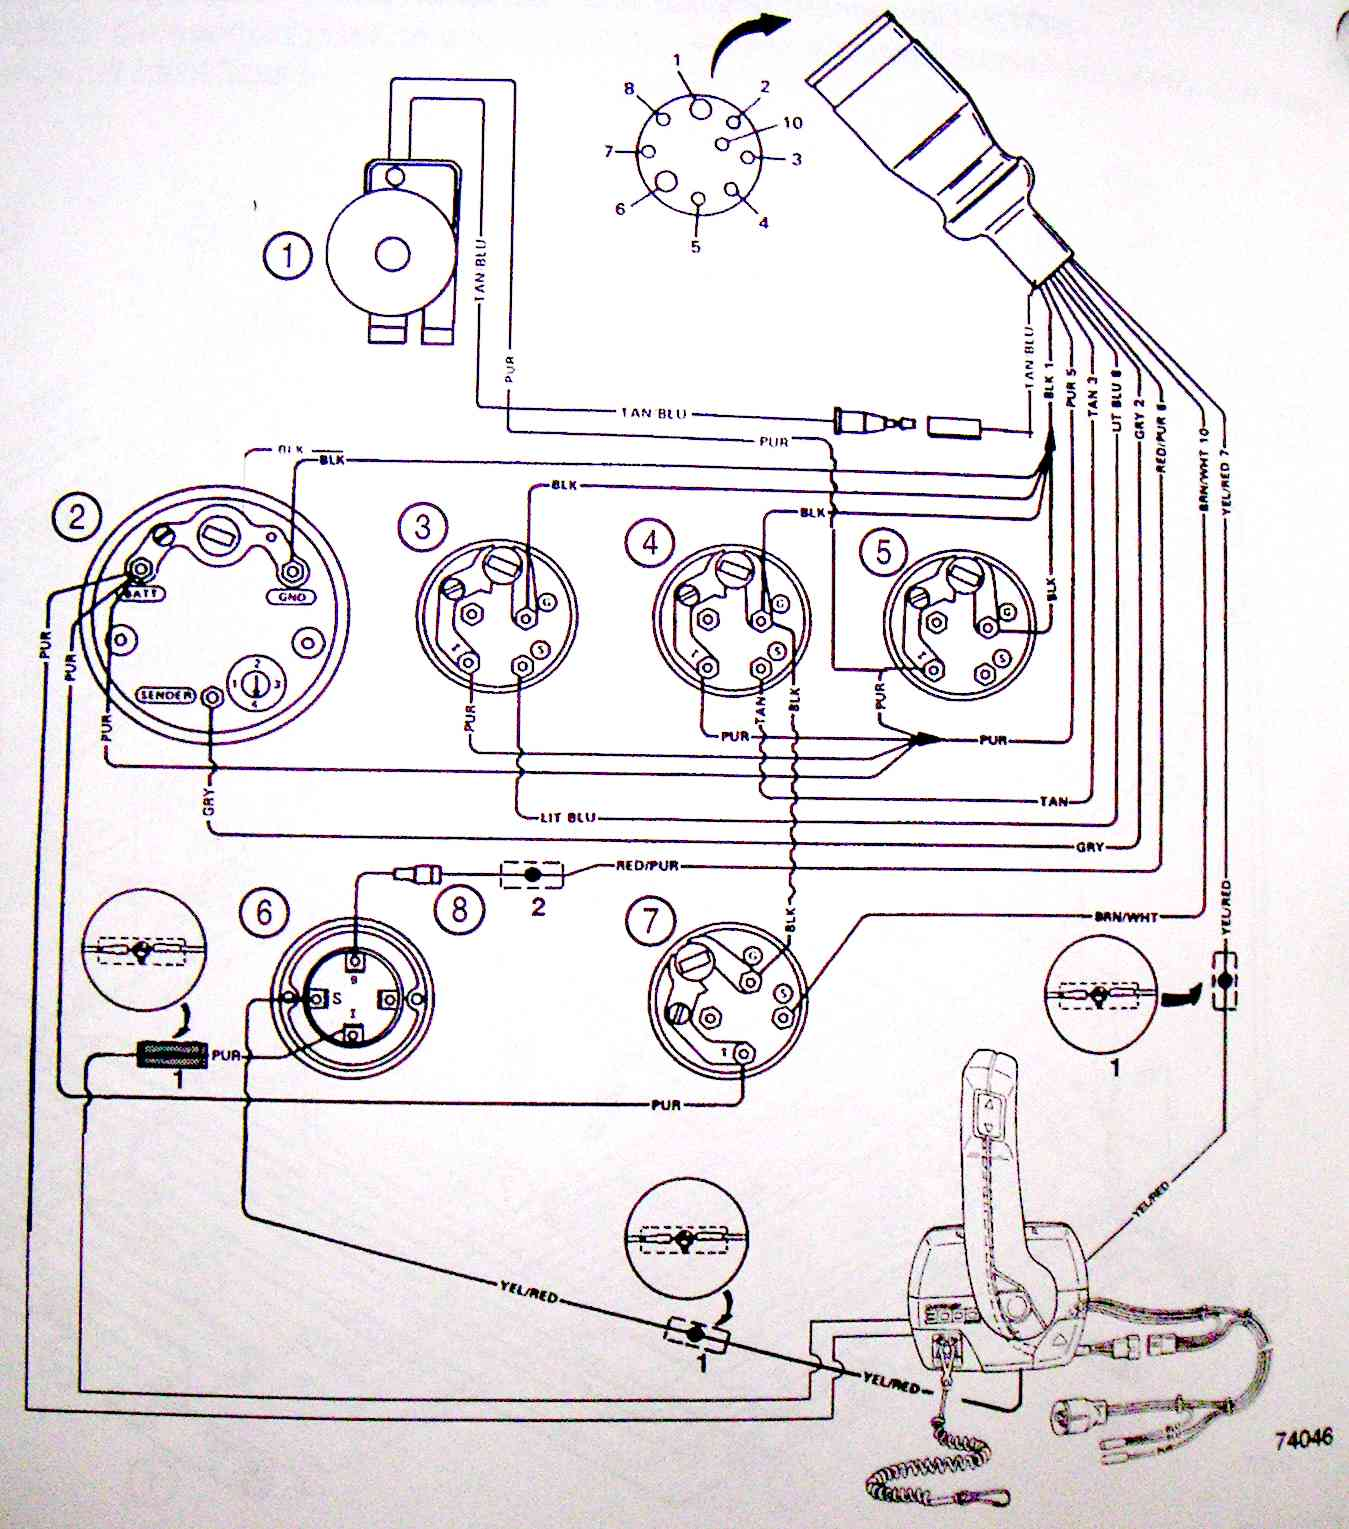 BoatHarness74046 yamaha outboard motor wiring diagrams the wiring diagram yamaha 10 pin wiring harness diagram at bayanpartner.co